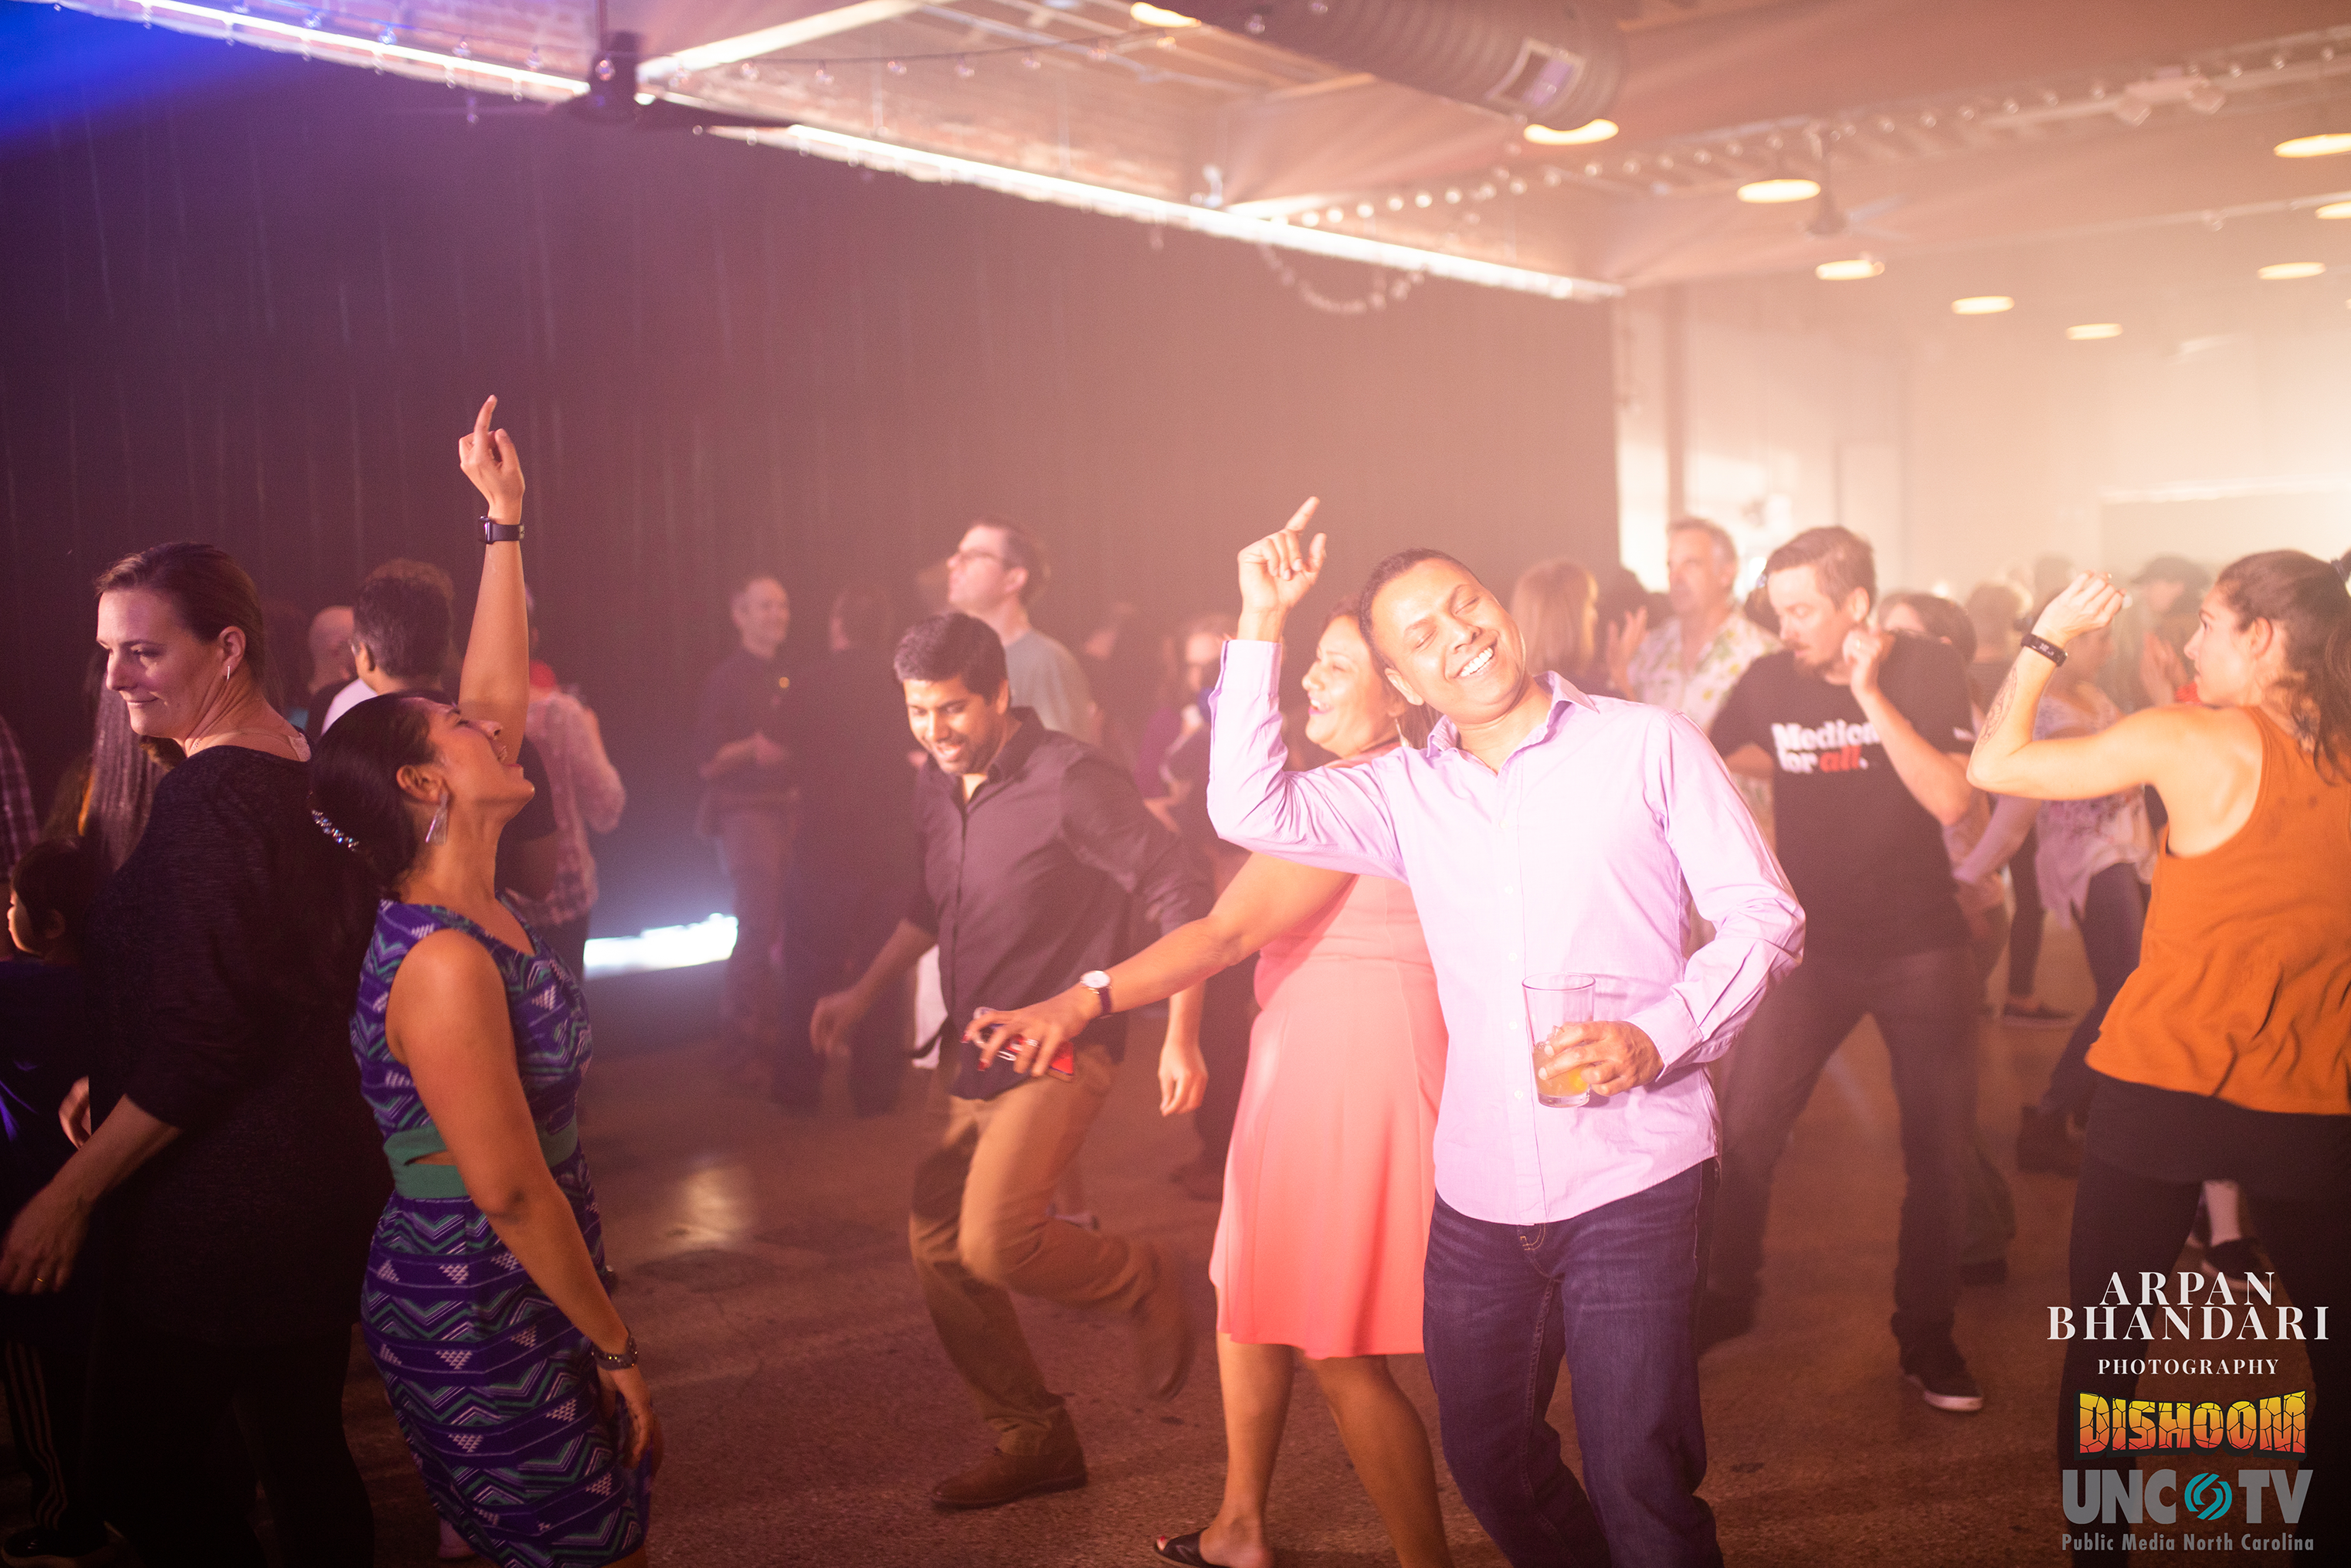 DISHOOM attendees dancing | Photo credit: Arpan Bhandari